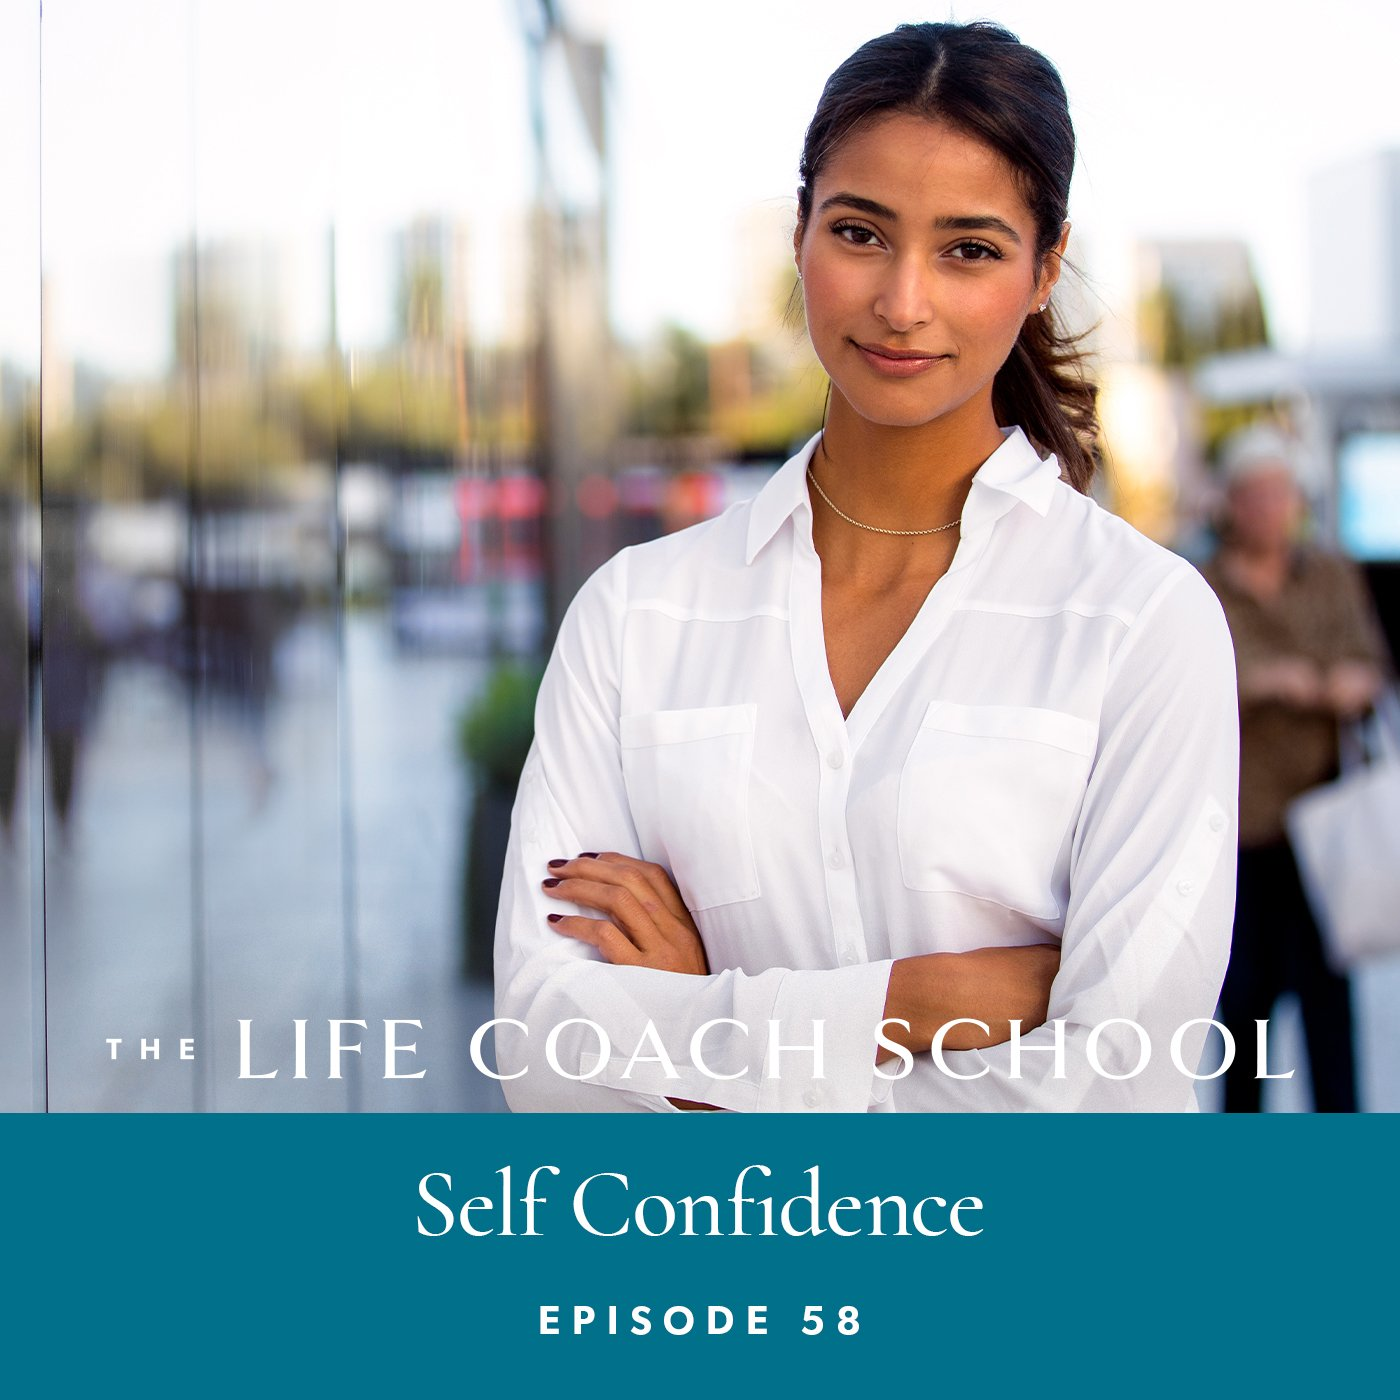 The Life Coach School Podcast with Brooke Castillo | Episode 58 | Self Confidence